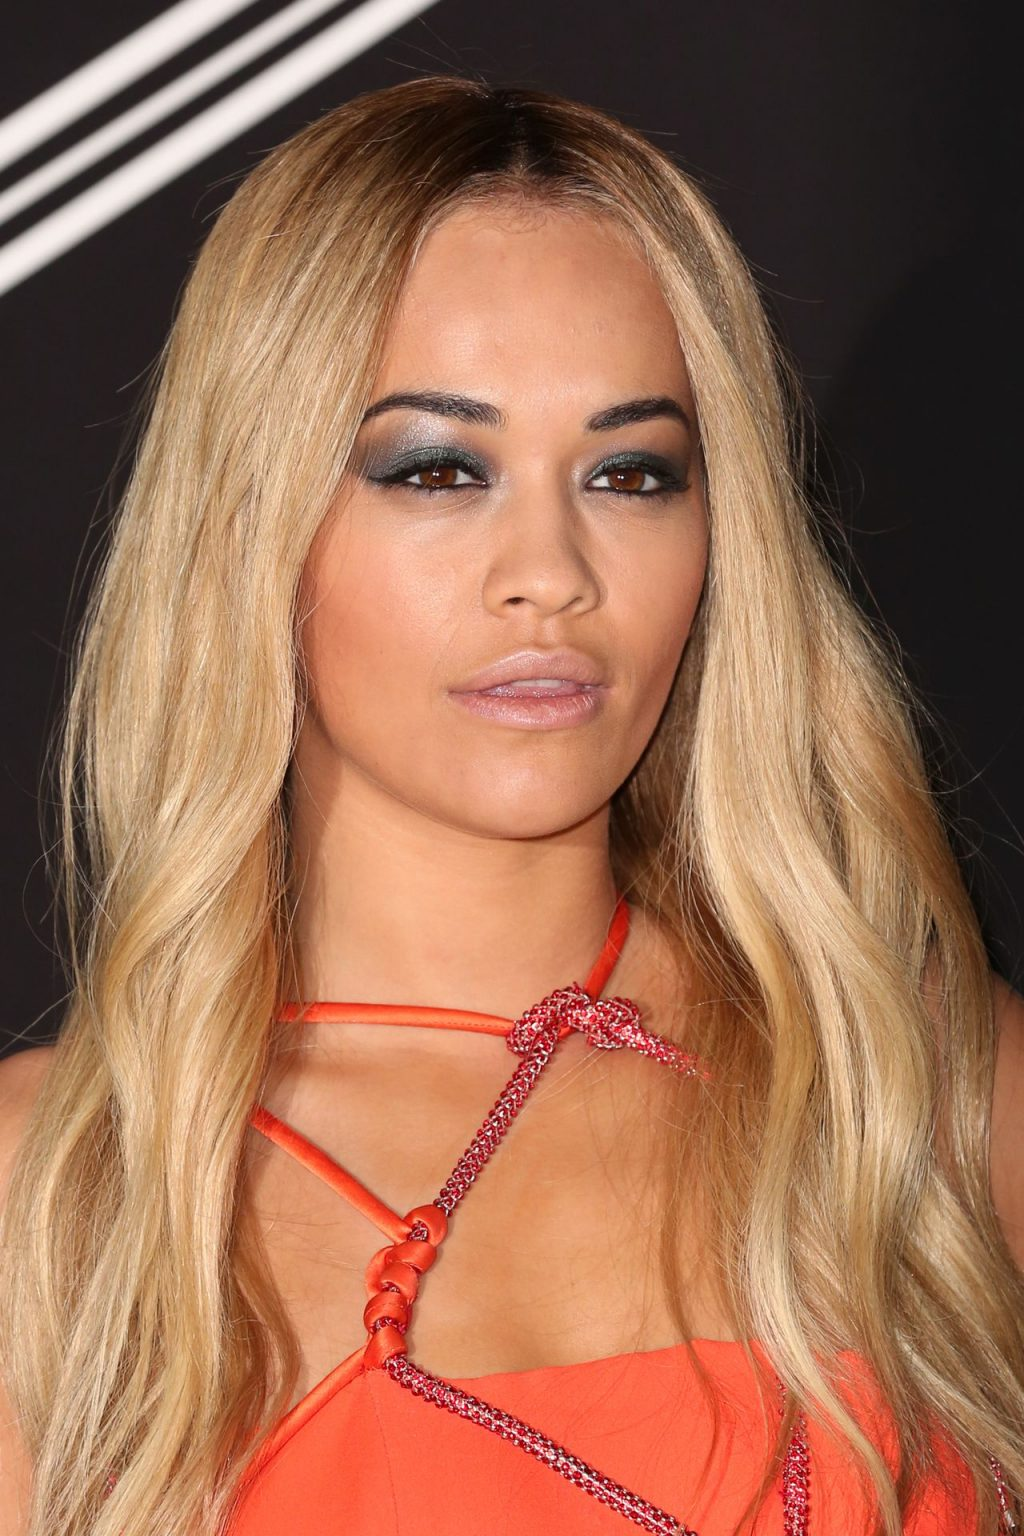 Rita Ora Pantyless (59 Photos)